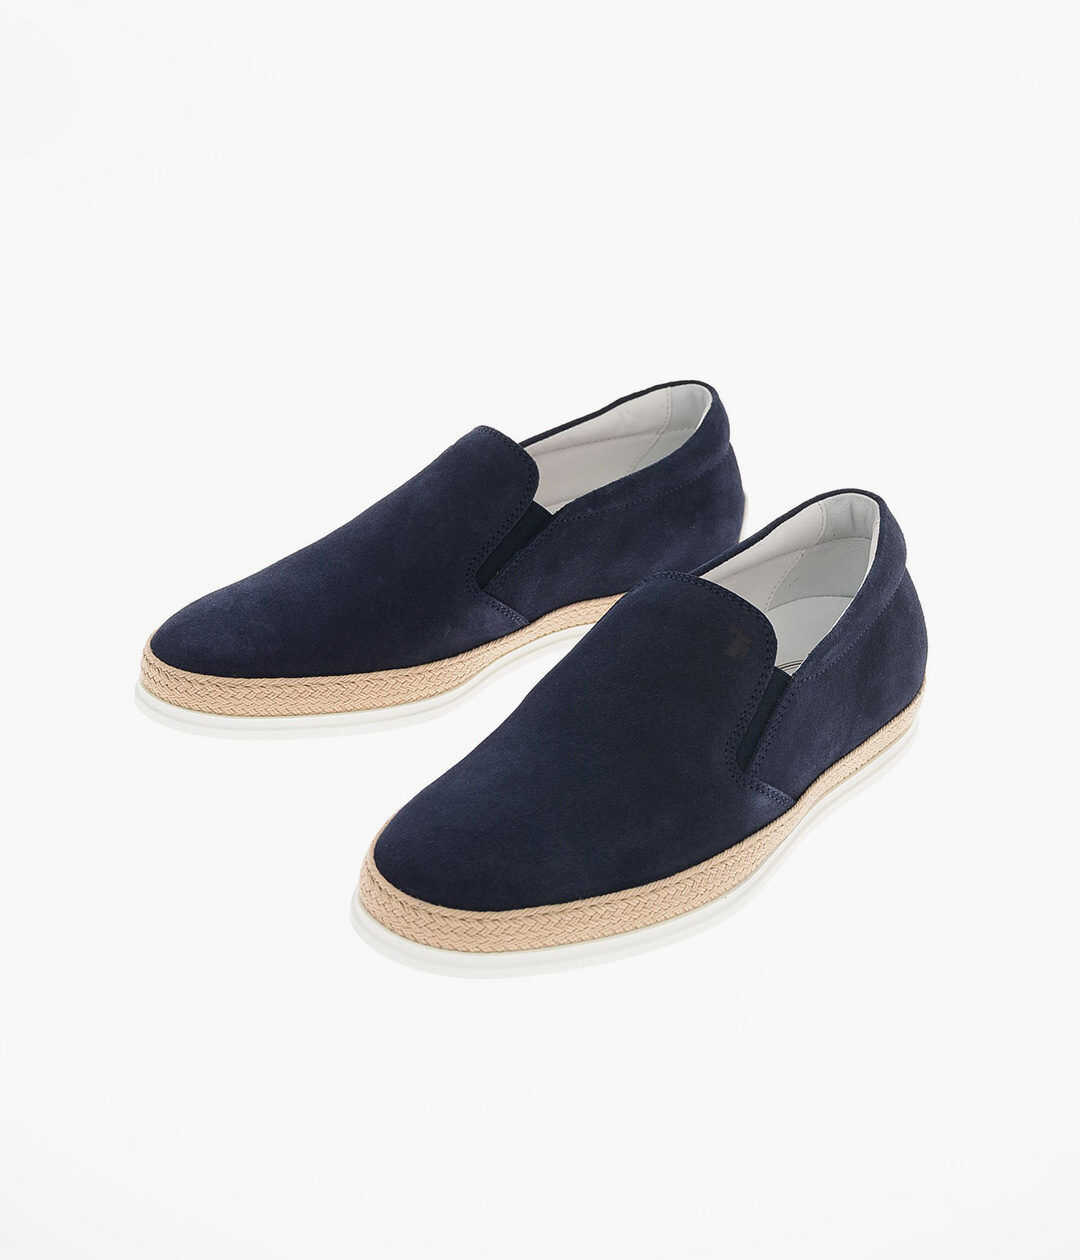 TOD'S suede Slip on sneakers BLUE imagine b-mall.ro